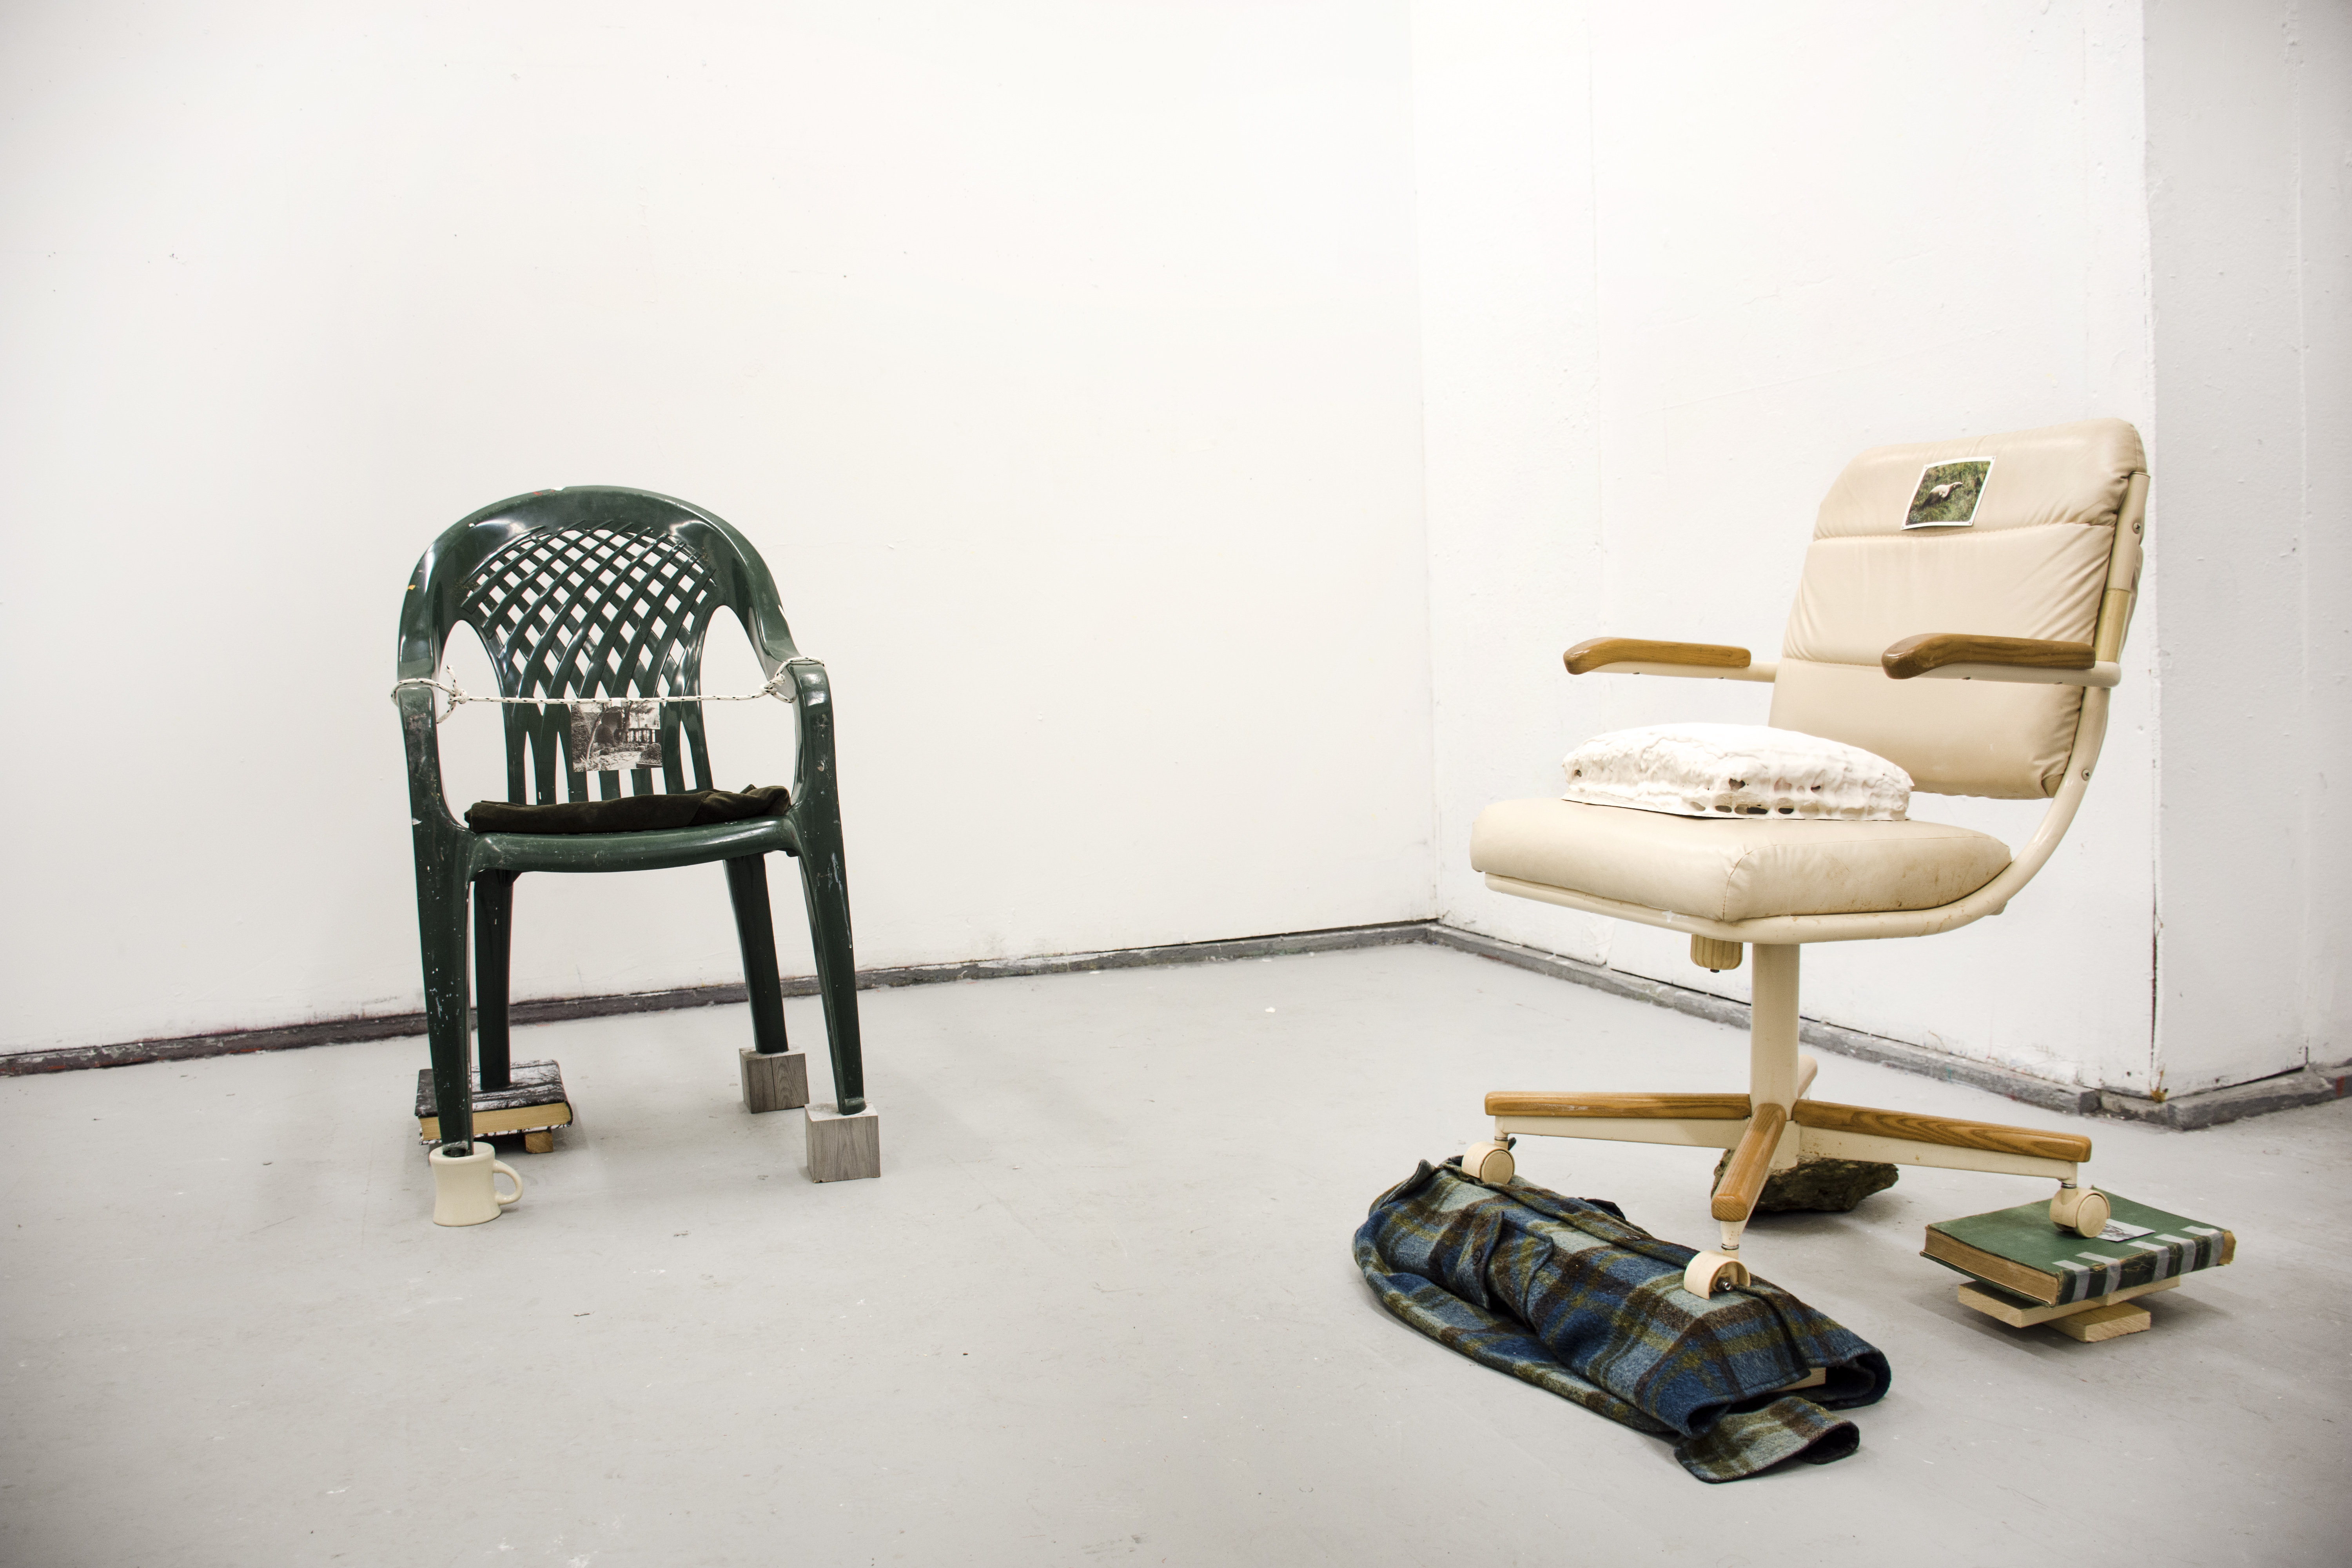 07_The_Learners_Forest_Leisure_Polar_Bear_Chair